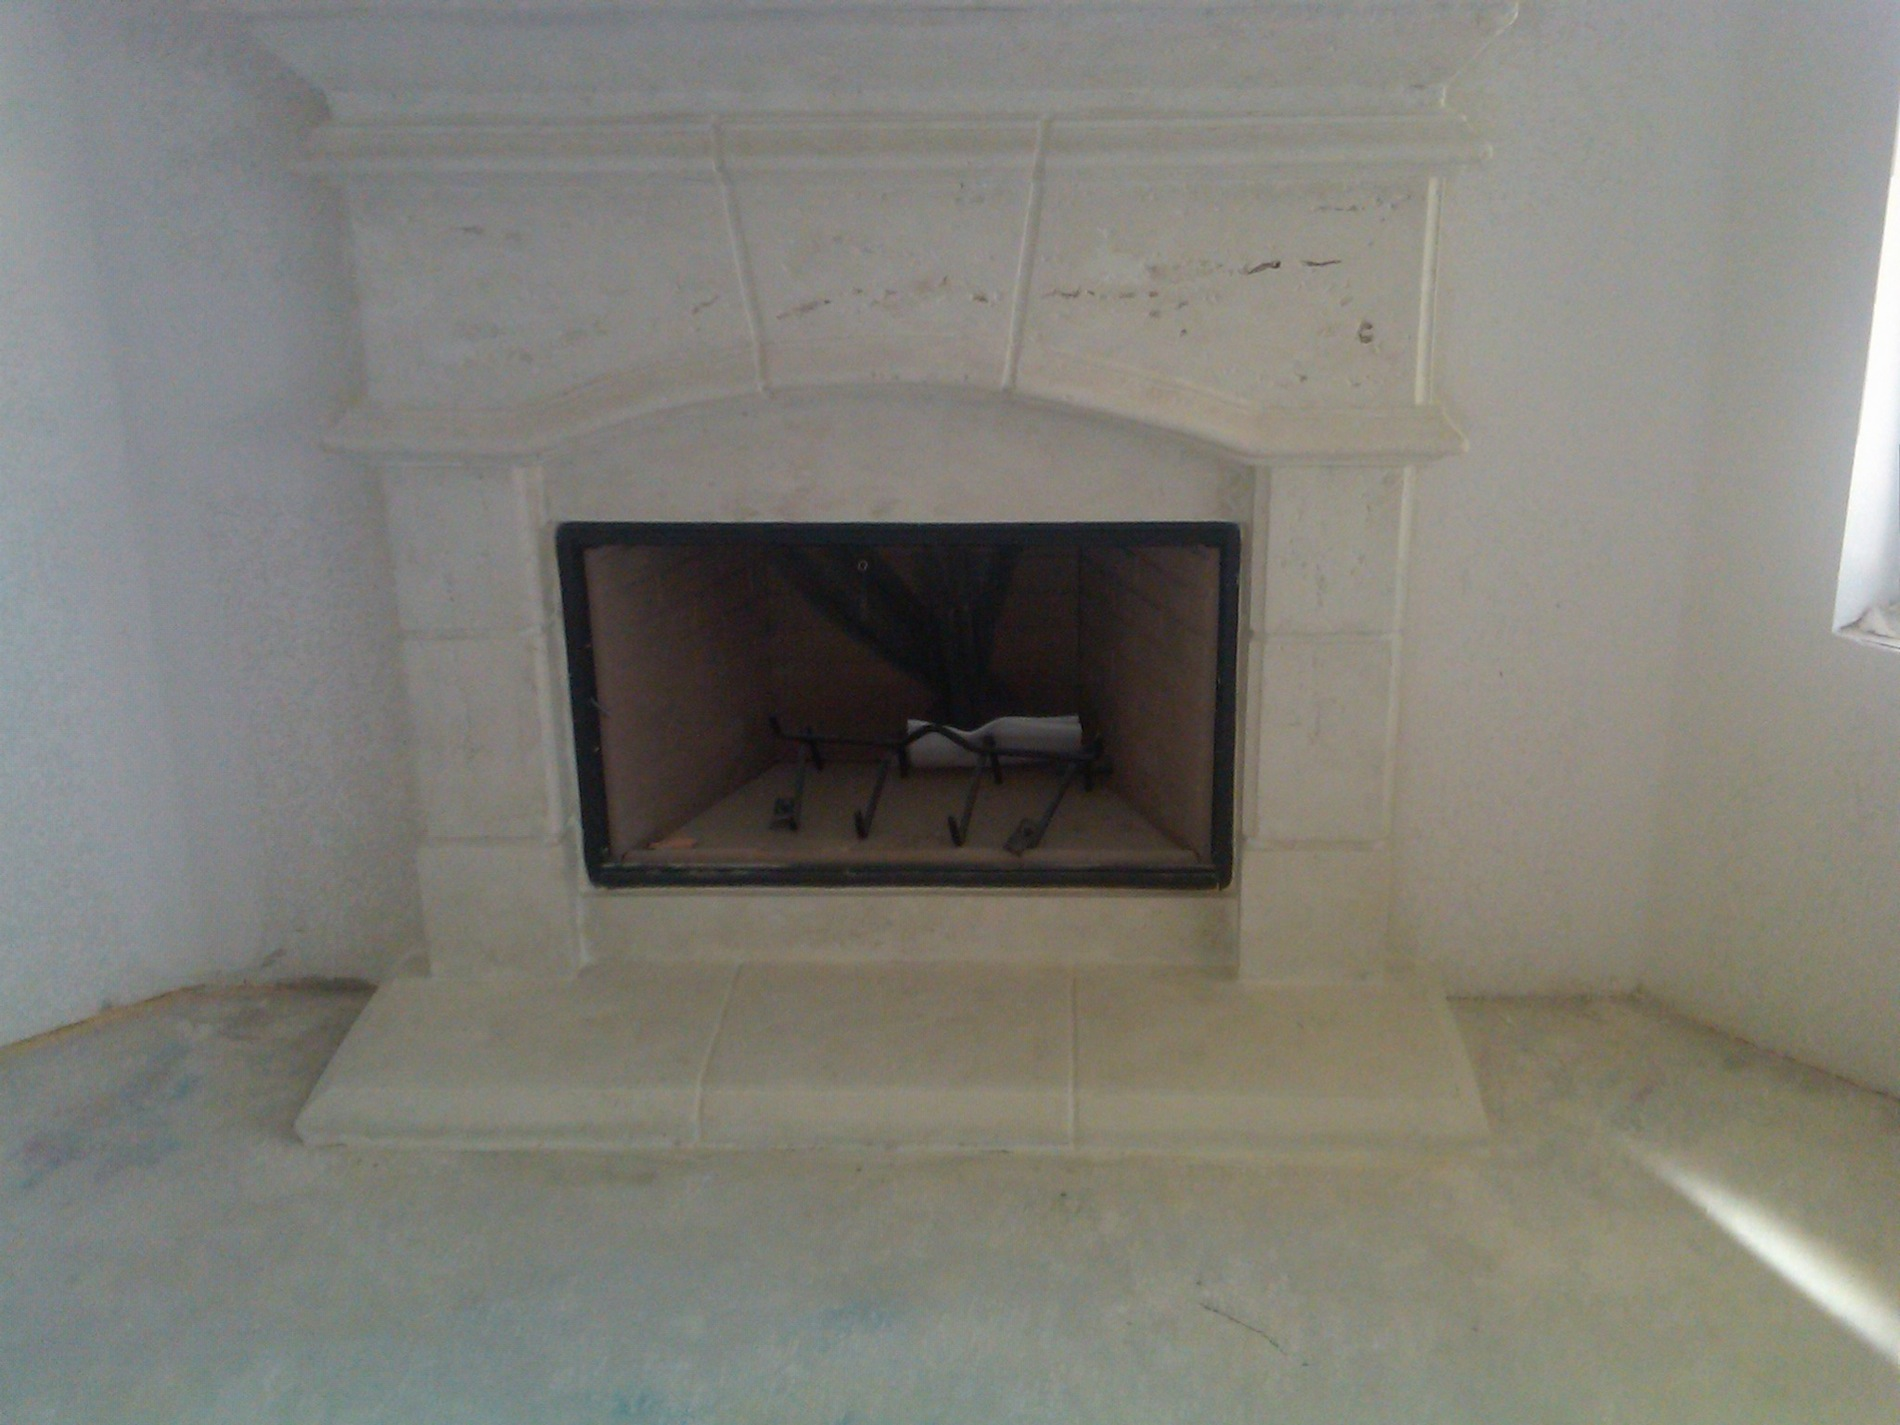 Fireplace and mantle installed